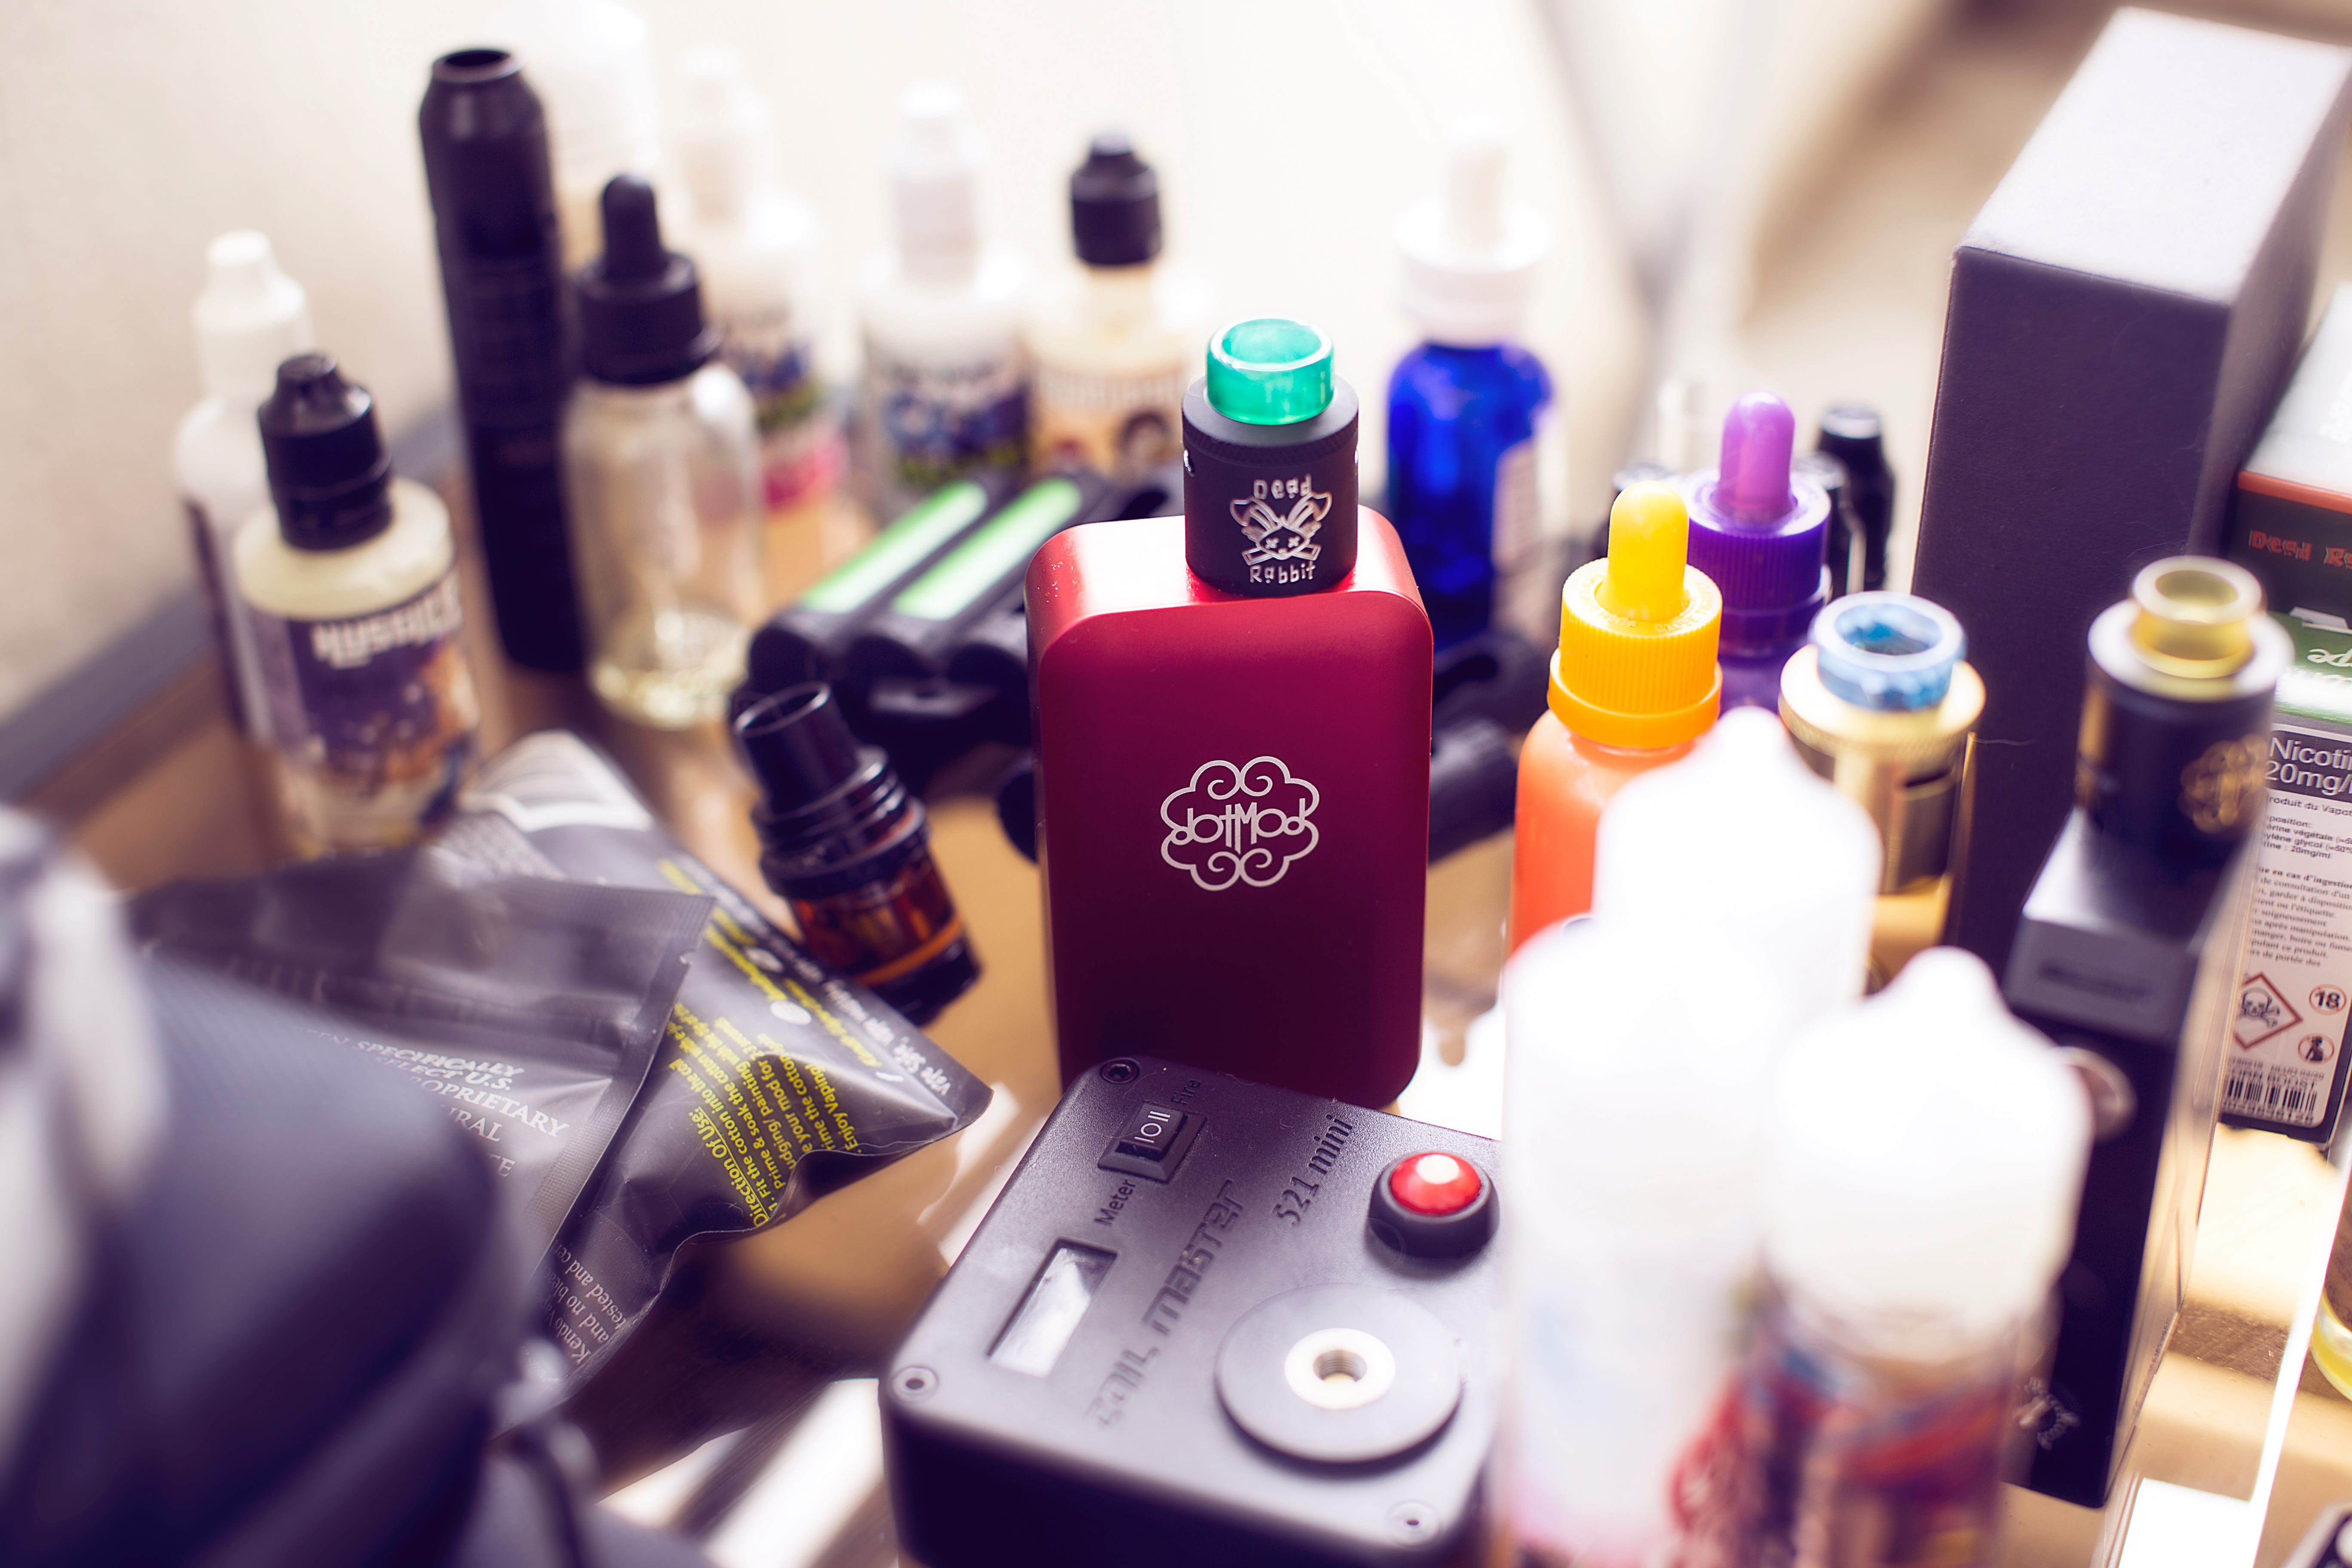 Red box mod vape beside e-juice bottles; image by Antonin FELS, via Unsplash.com.